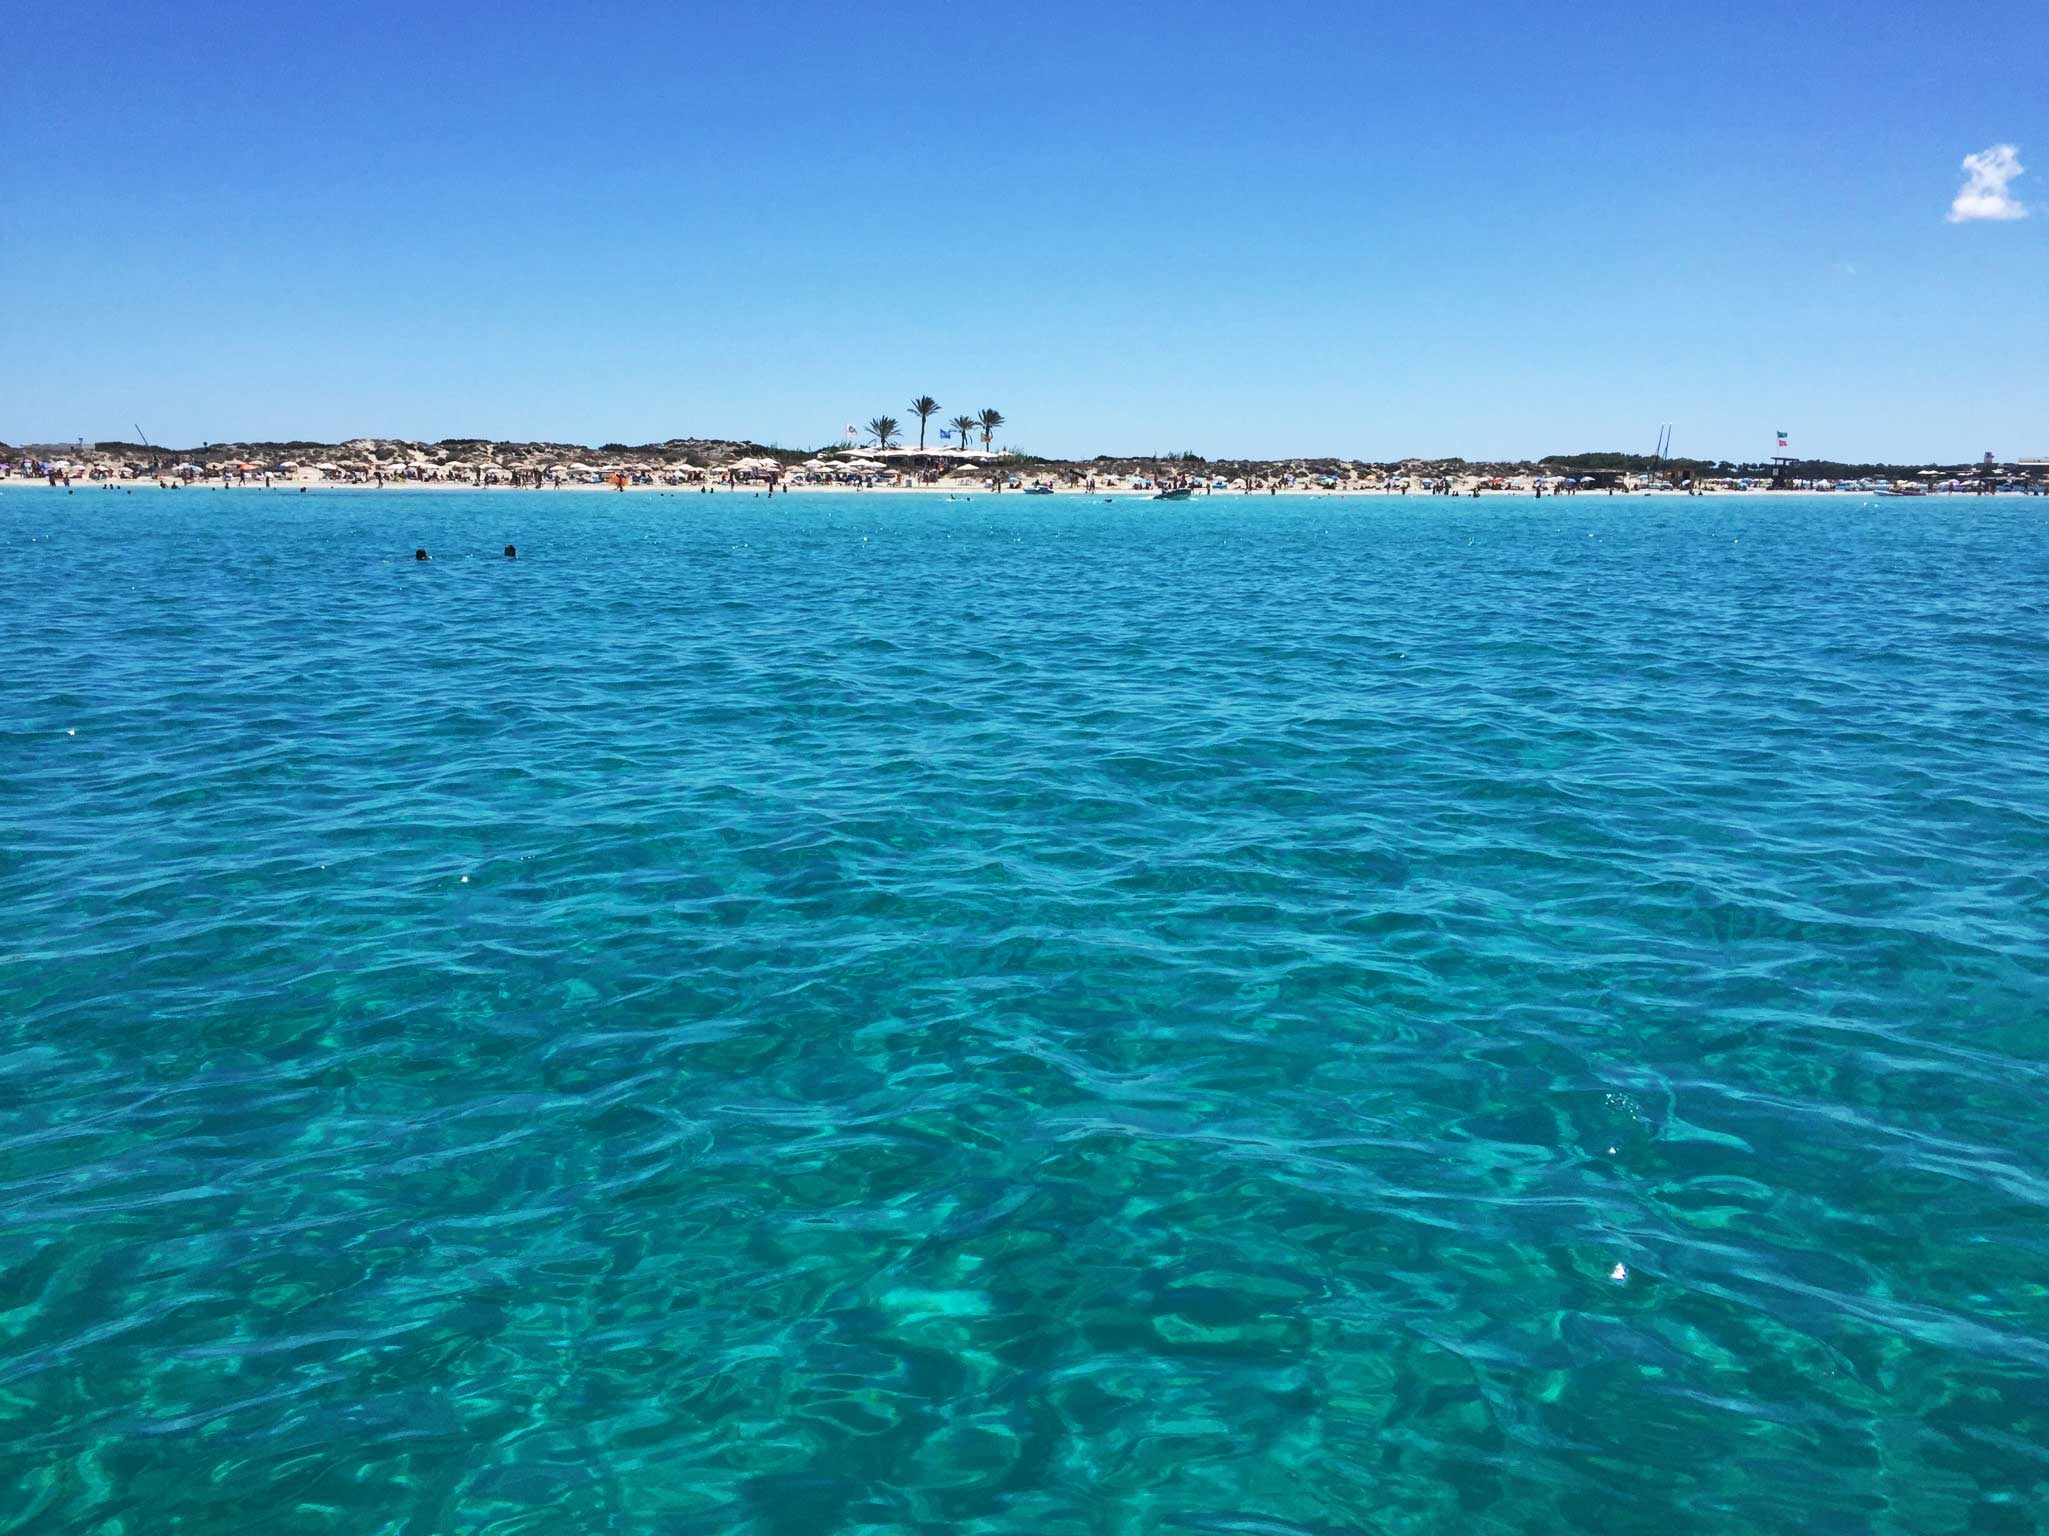 Looking to the Formentera coast from a boat on the bright turquoise ocean